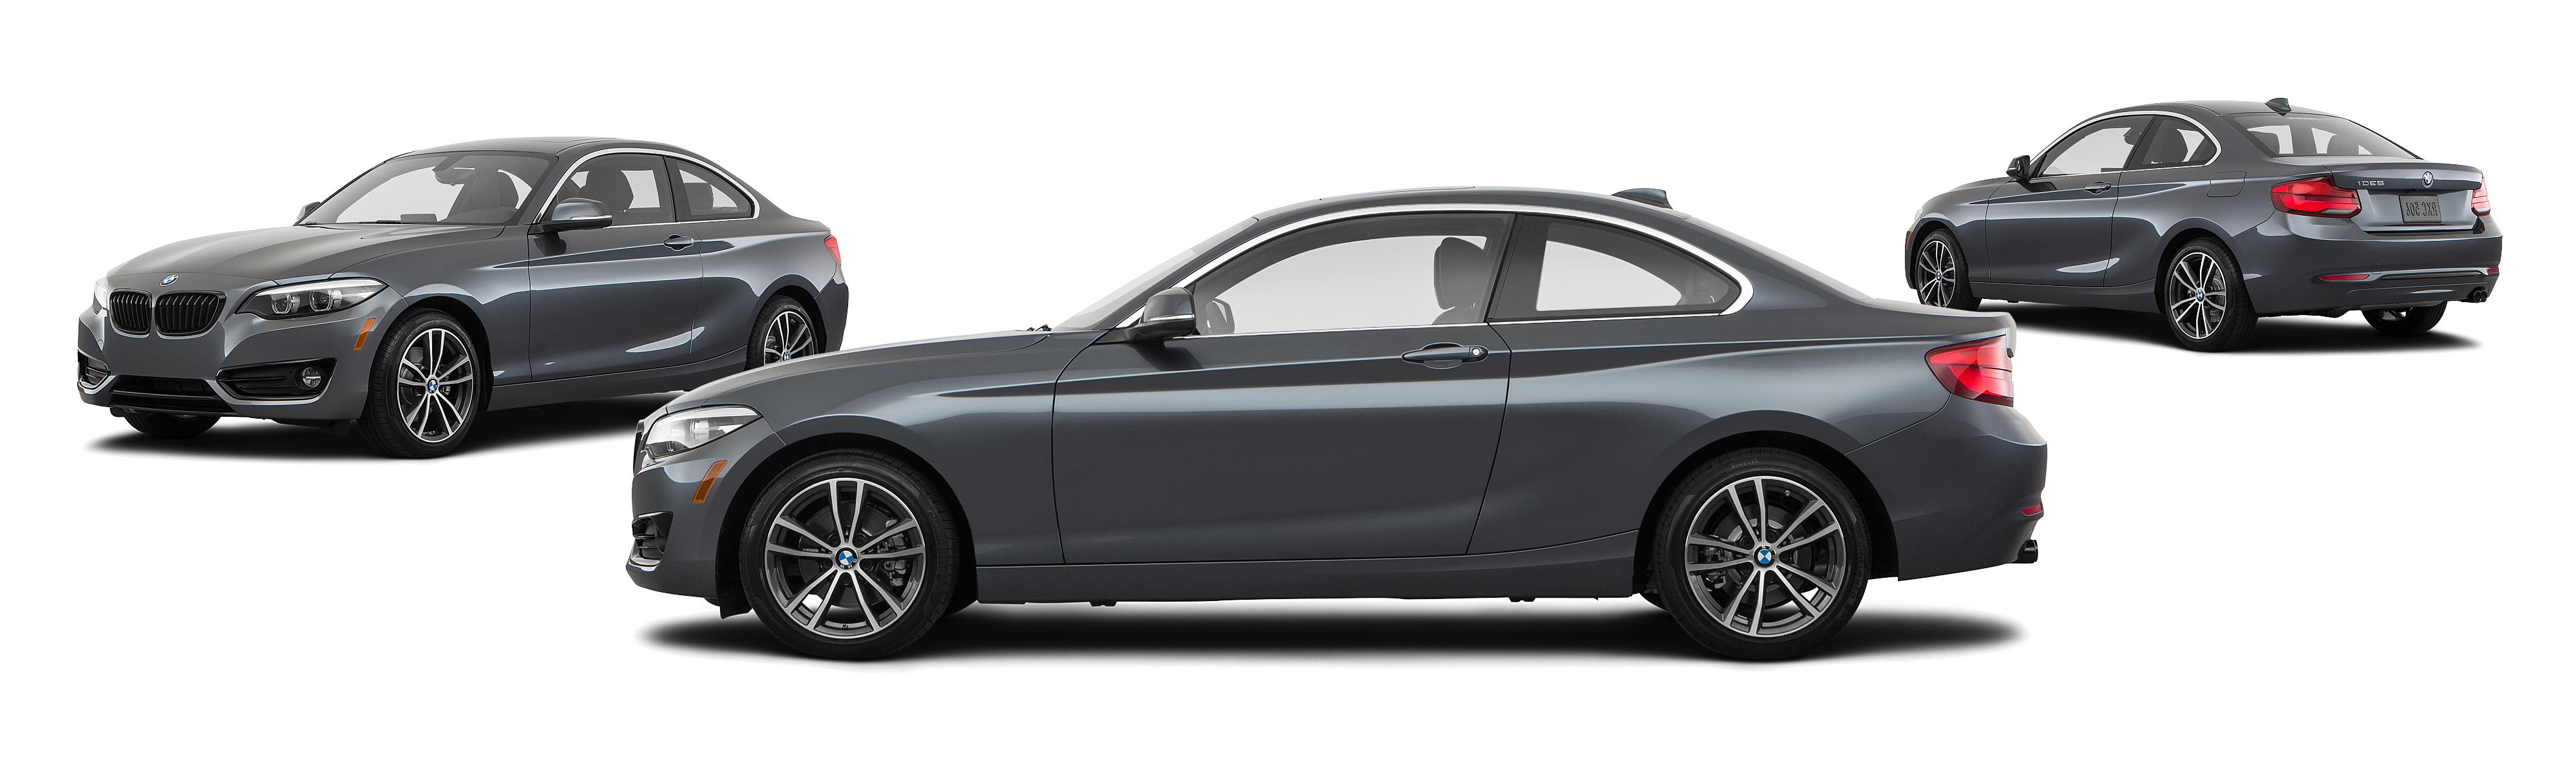 2019 bmw 2 series m240i 2dr coupe research groovecar rh groovecar com